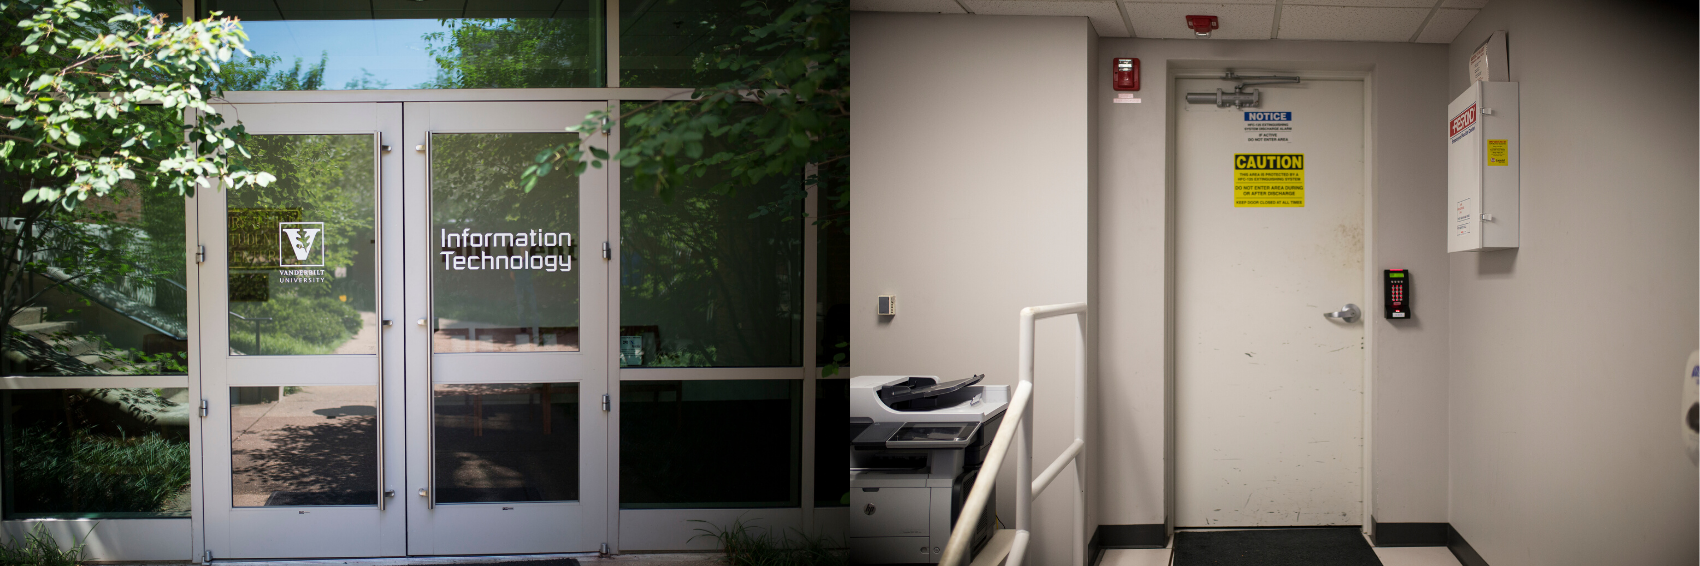 On left, the doors to the ACCRE building. On right, a heavy door and security panel that leads to the data center.